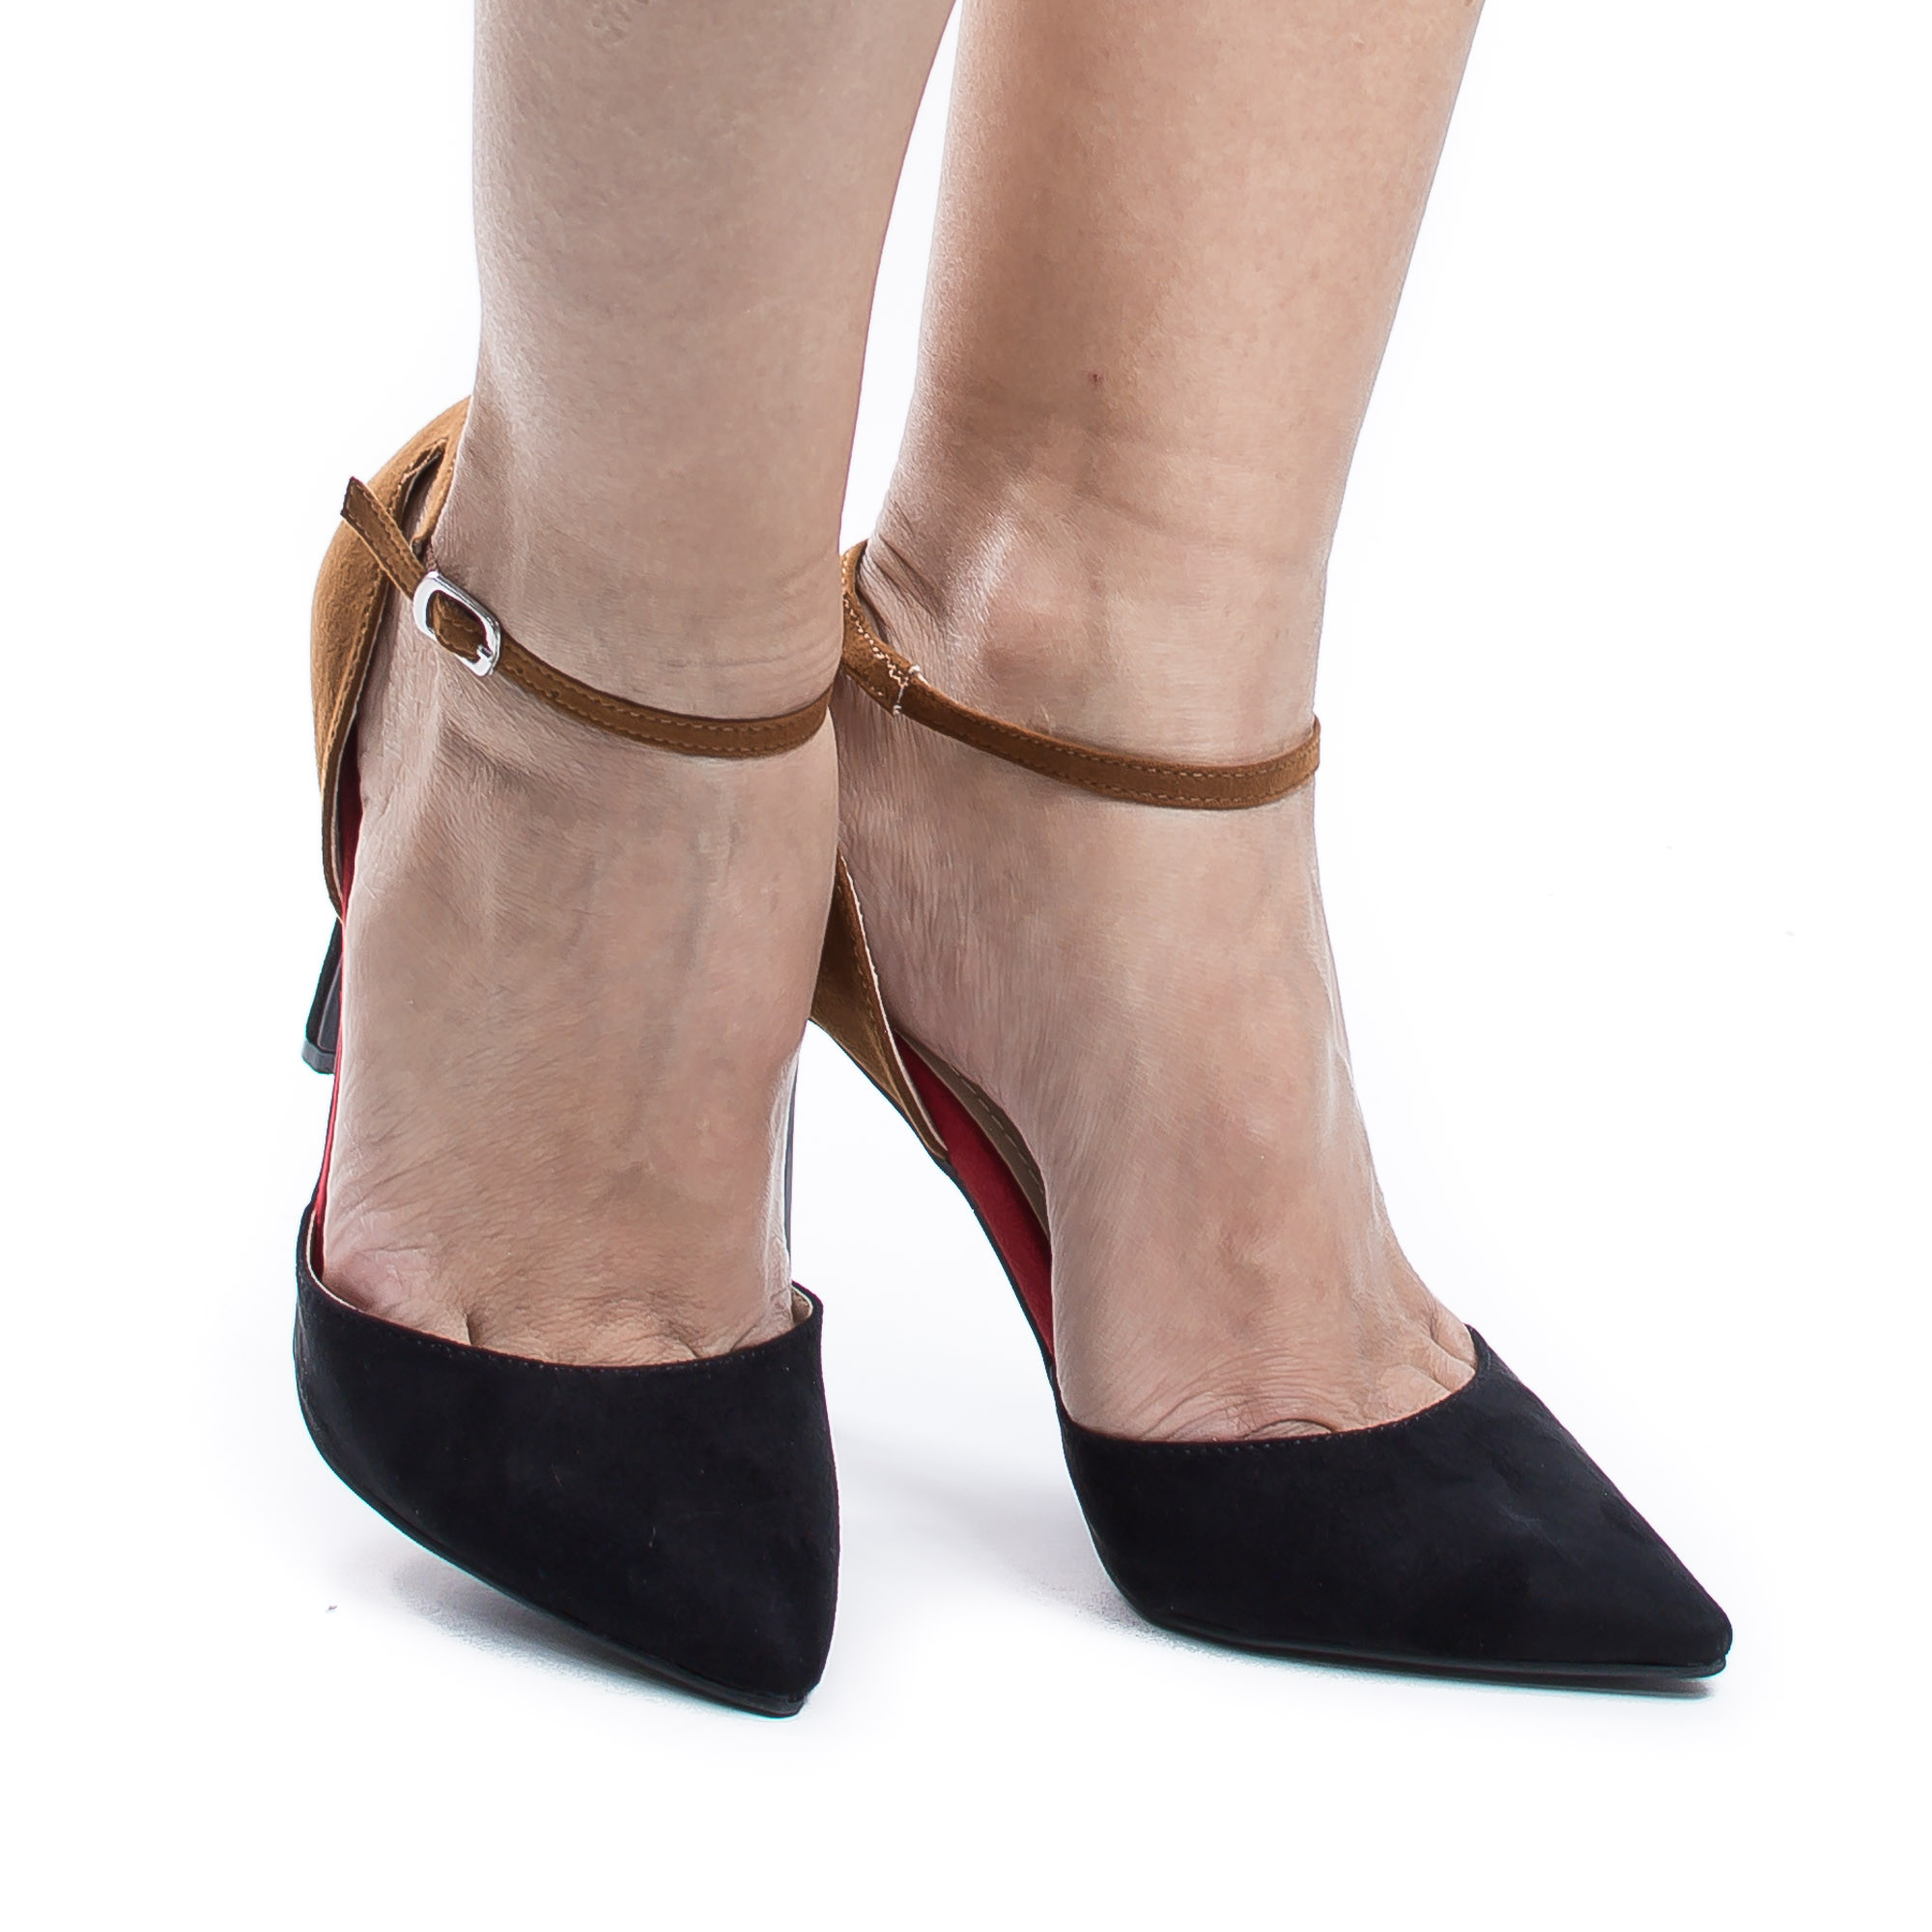 Riseup21V by Anne Michelle, Multi D'Orsay Buckle Ankle Cuff Stiletto Heel Dress Pumps